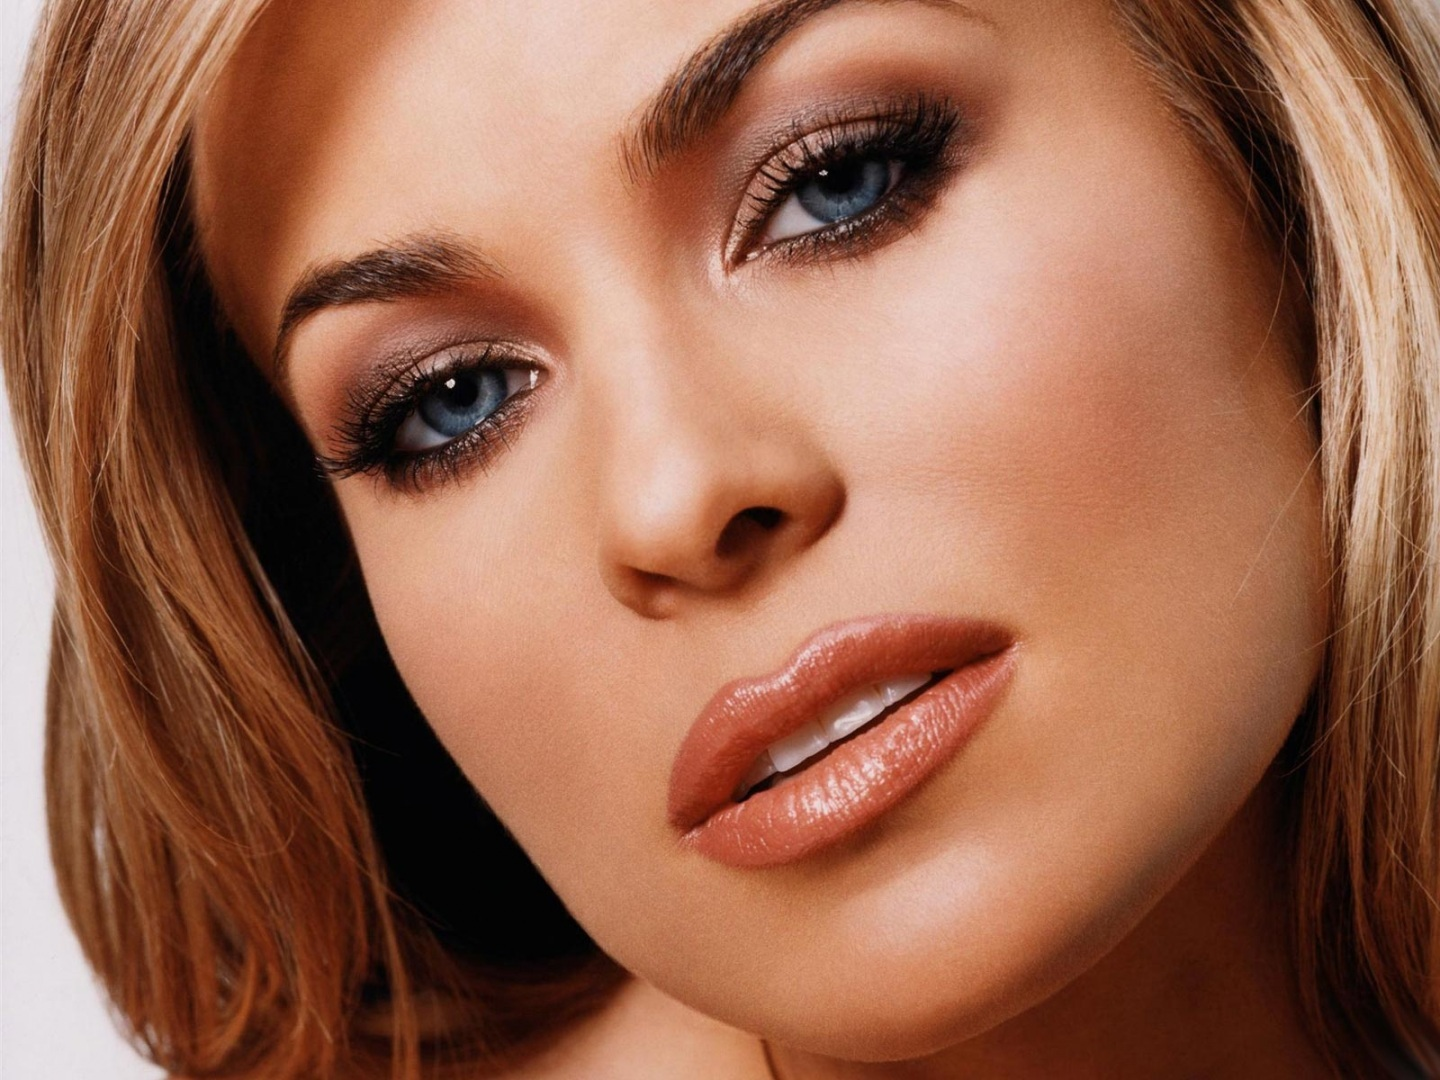 Carmen Electra Wallpaper Closeup